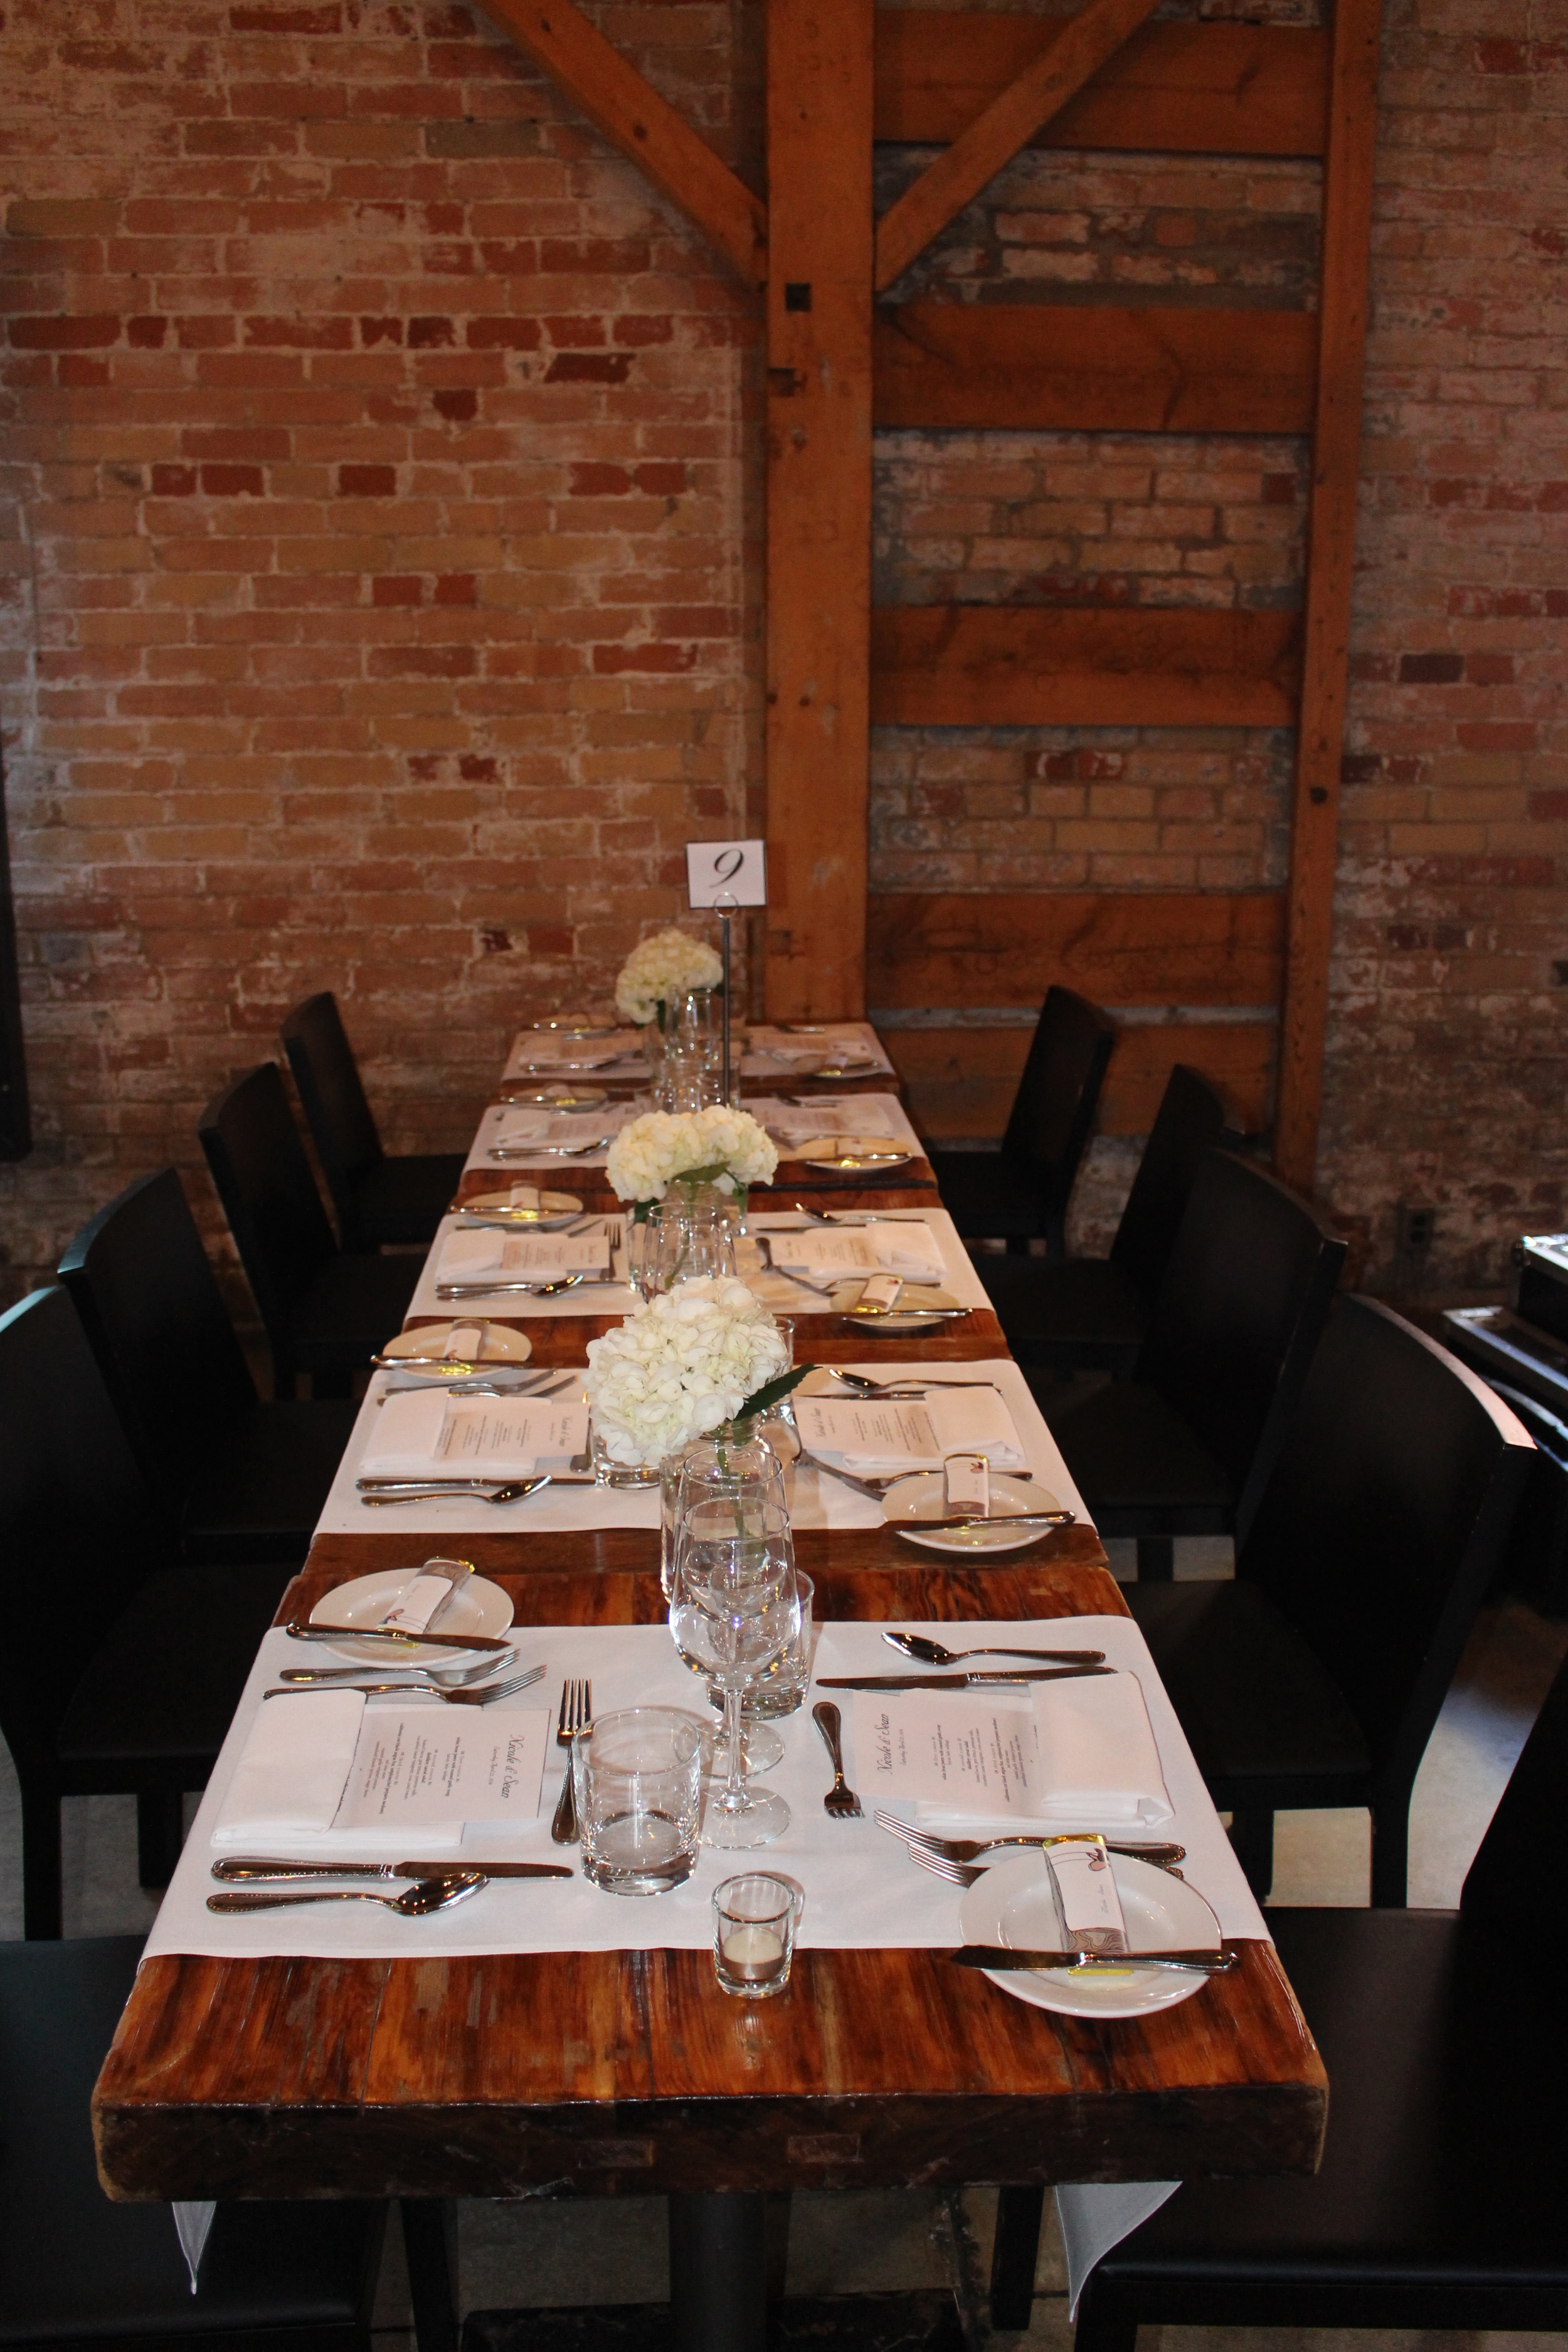 NIcole and Sean's table setting at Archeo, Distillery District, Toronto, ON